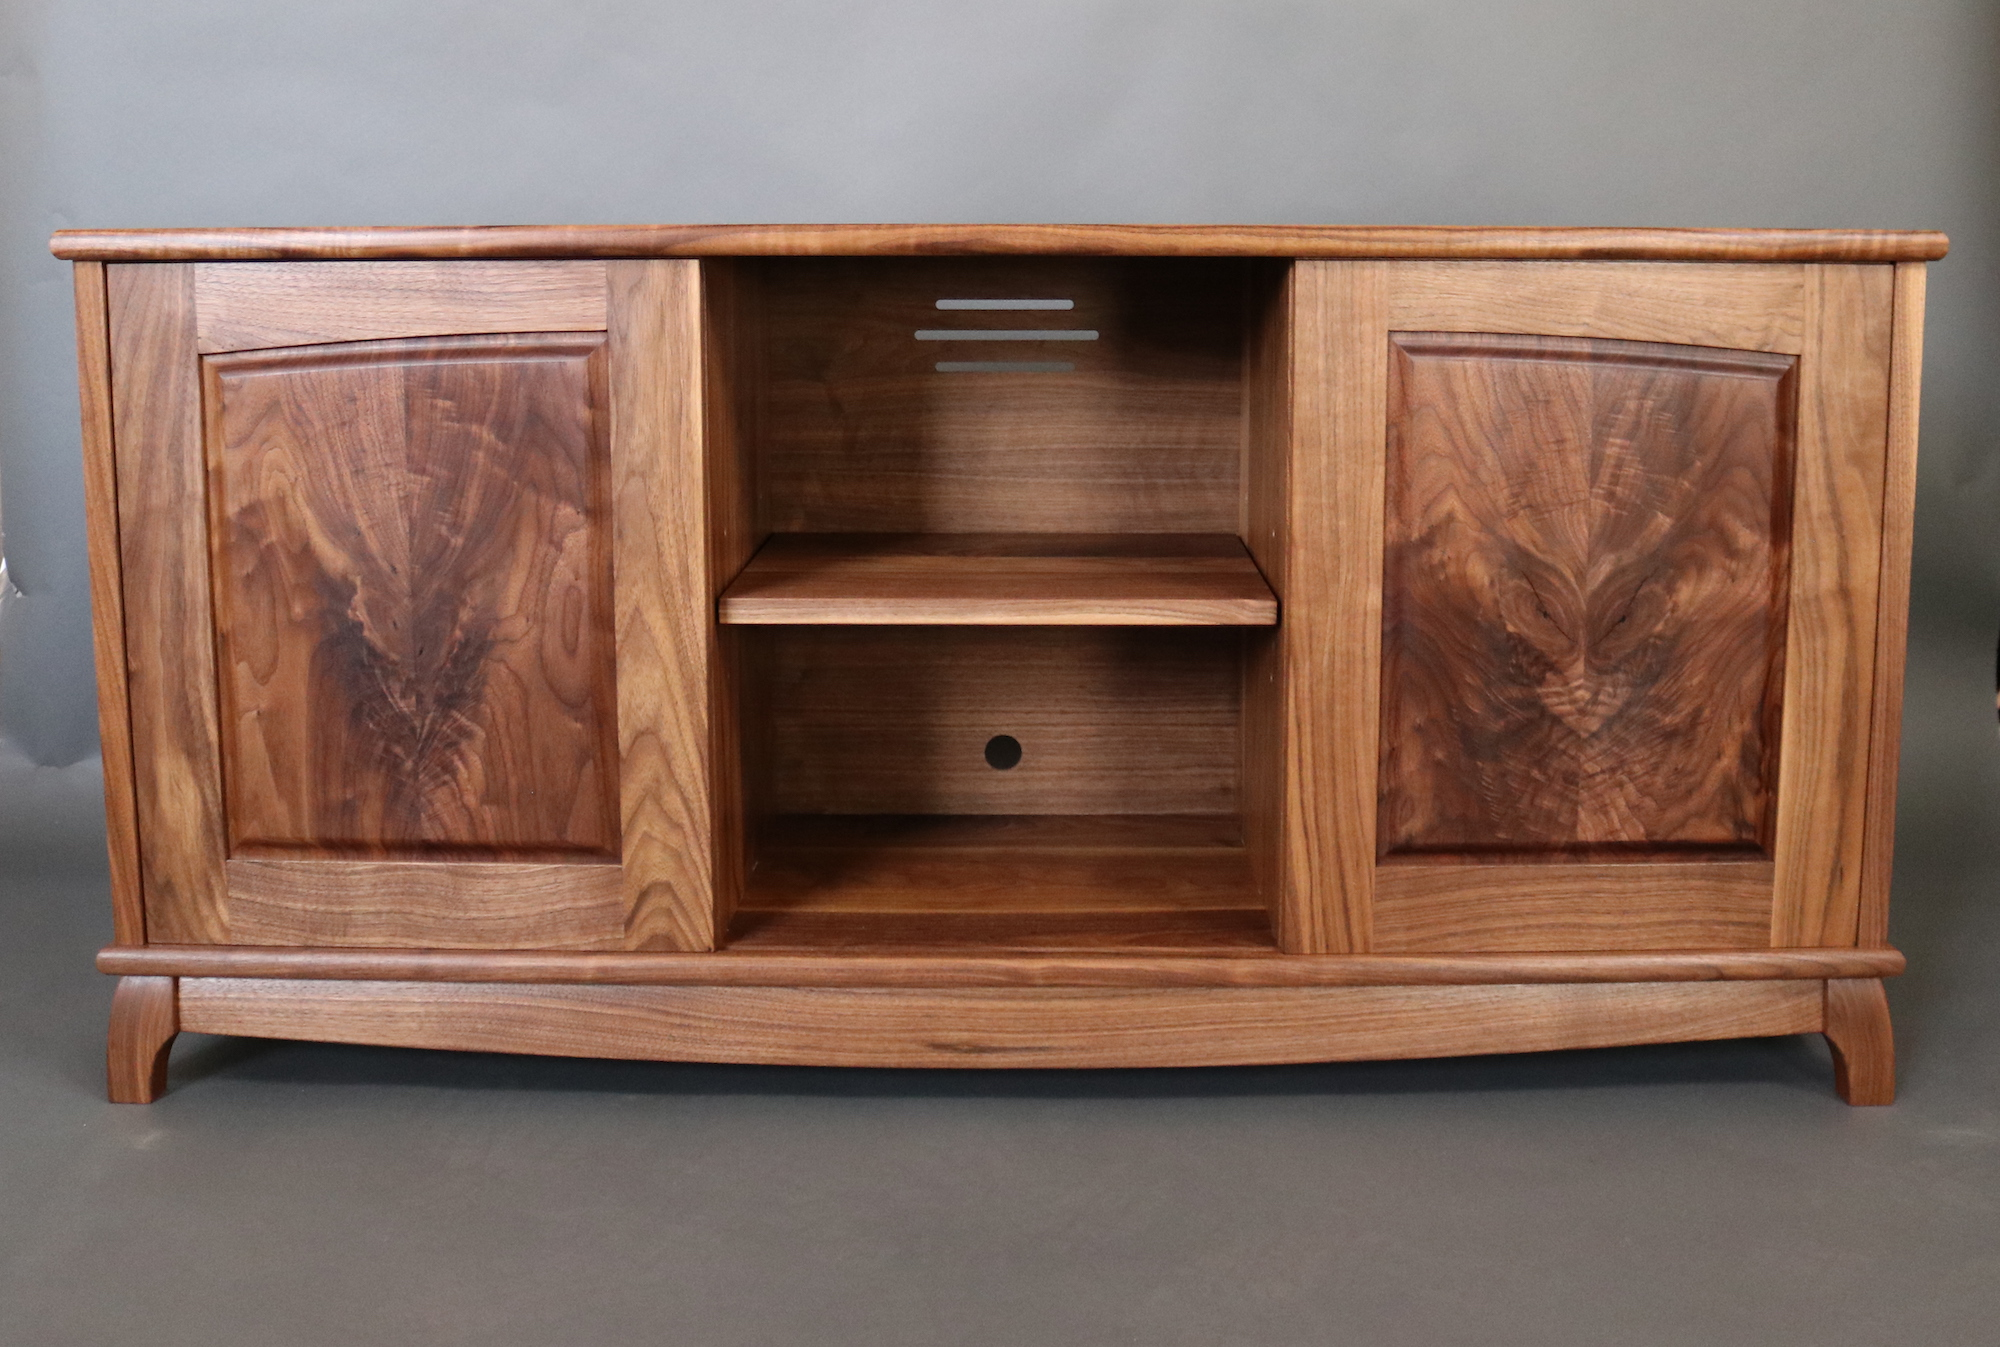 Media Credenza, Now with More Crotch! - The Wood Whisperer